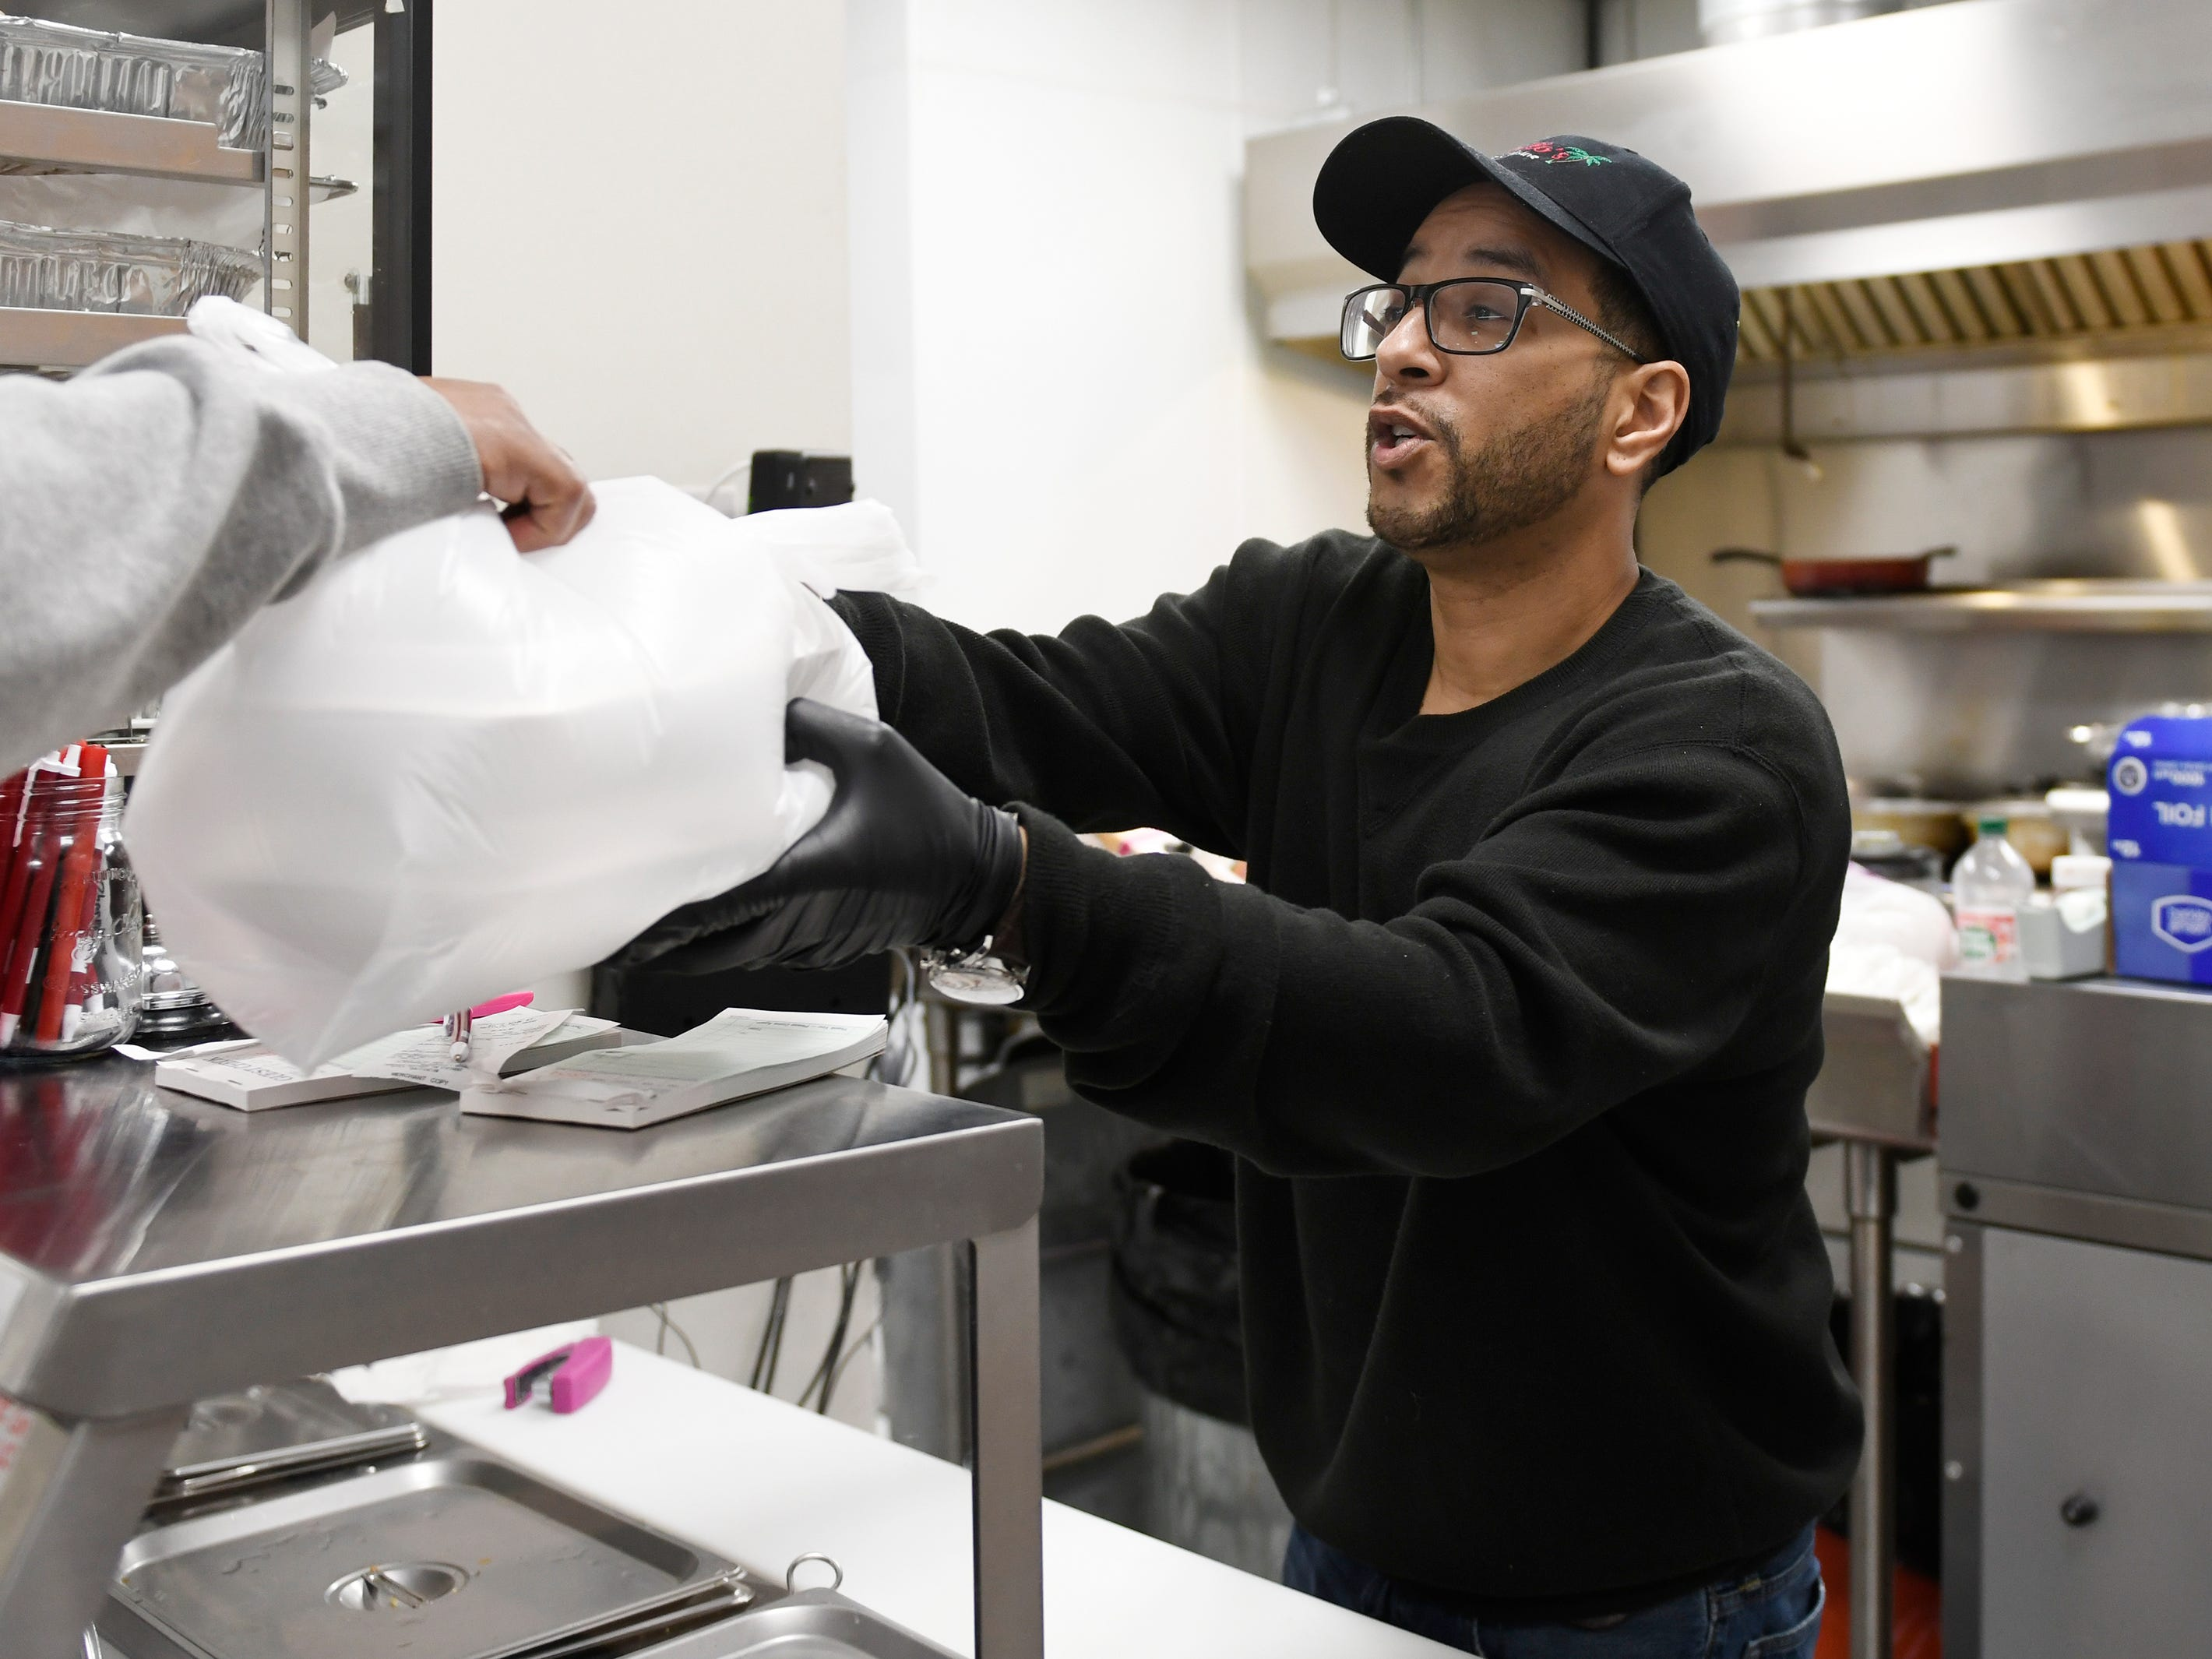 Criollo's Latin Cuisine owner Scott Guzman gives a customer their lunch order on Wednesday, March 27, 2019. The restaurant is located inside the EZ-Mart on West Main Street in Millville.